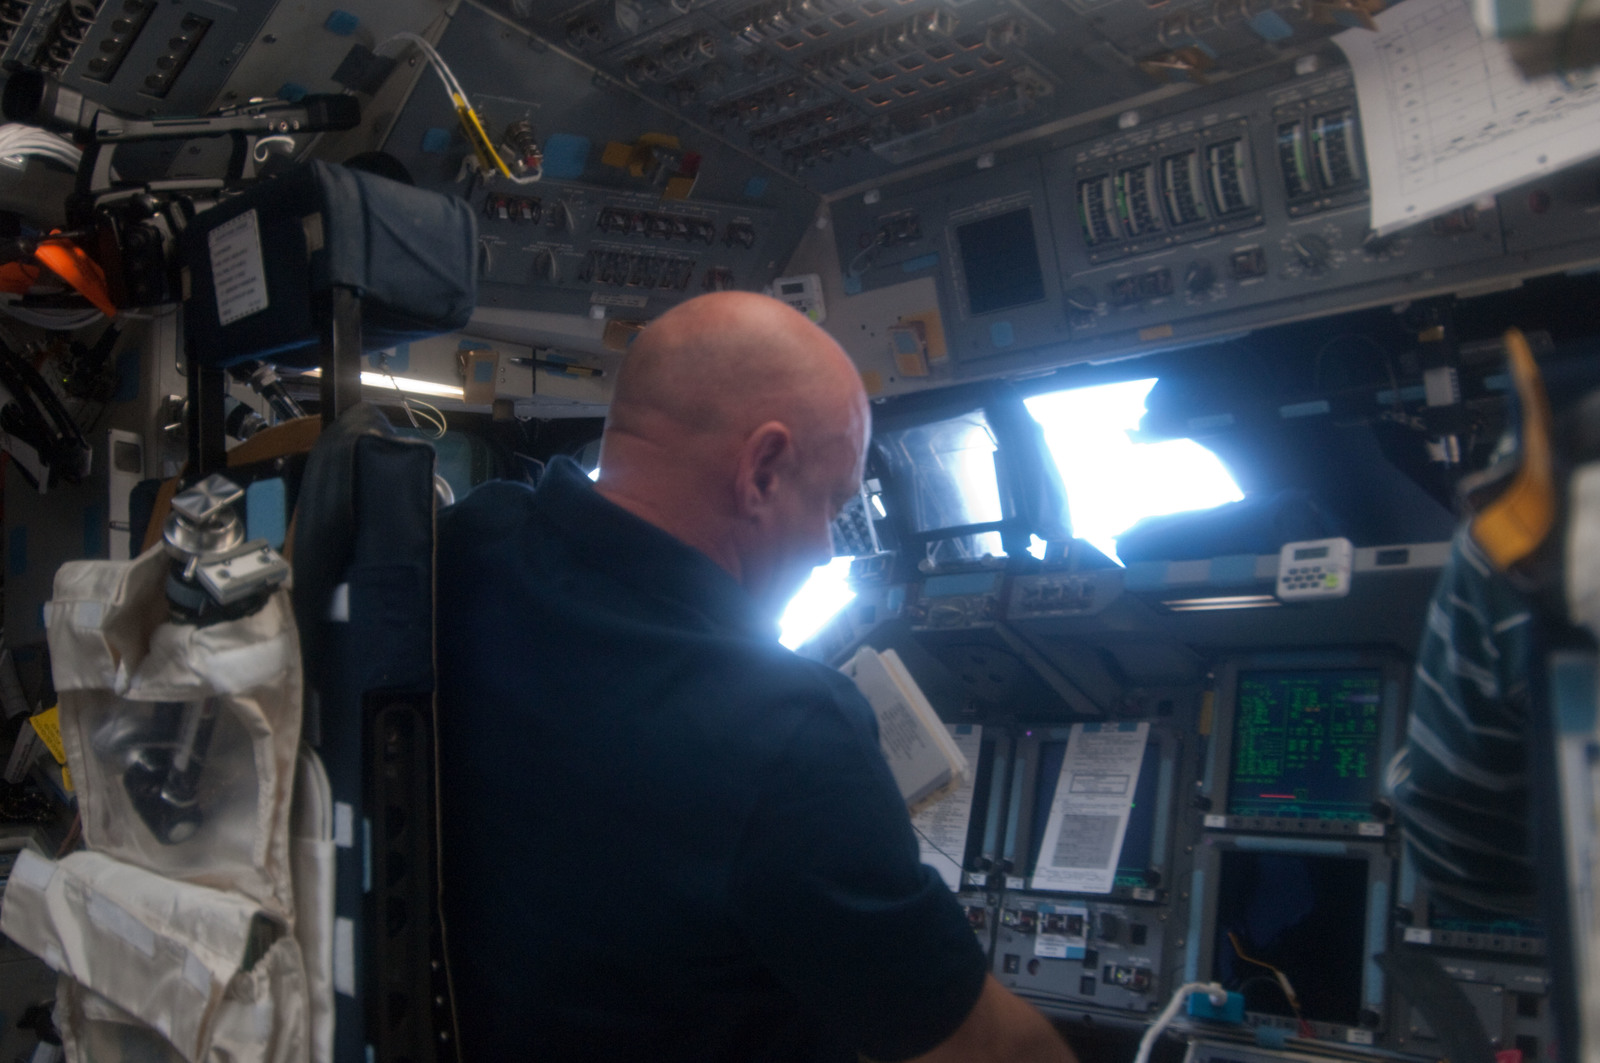 S134E005345 - STS-134 - View of STS-134 CDR Kelly working on the Flight Deck